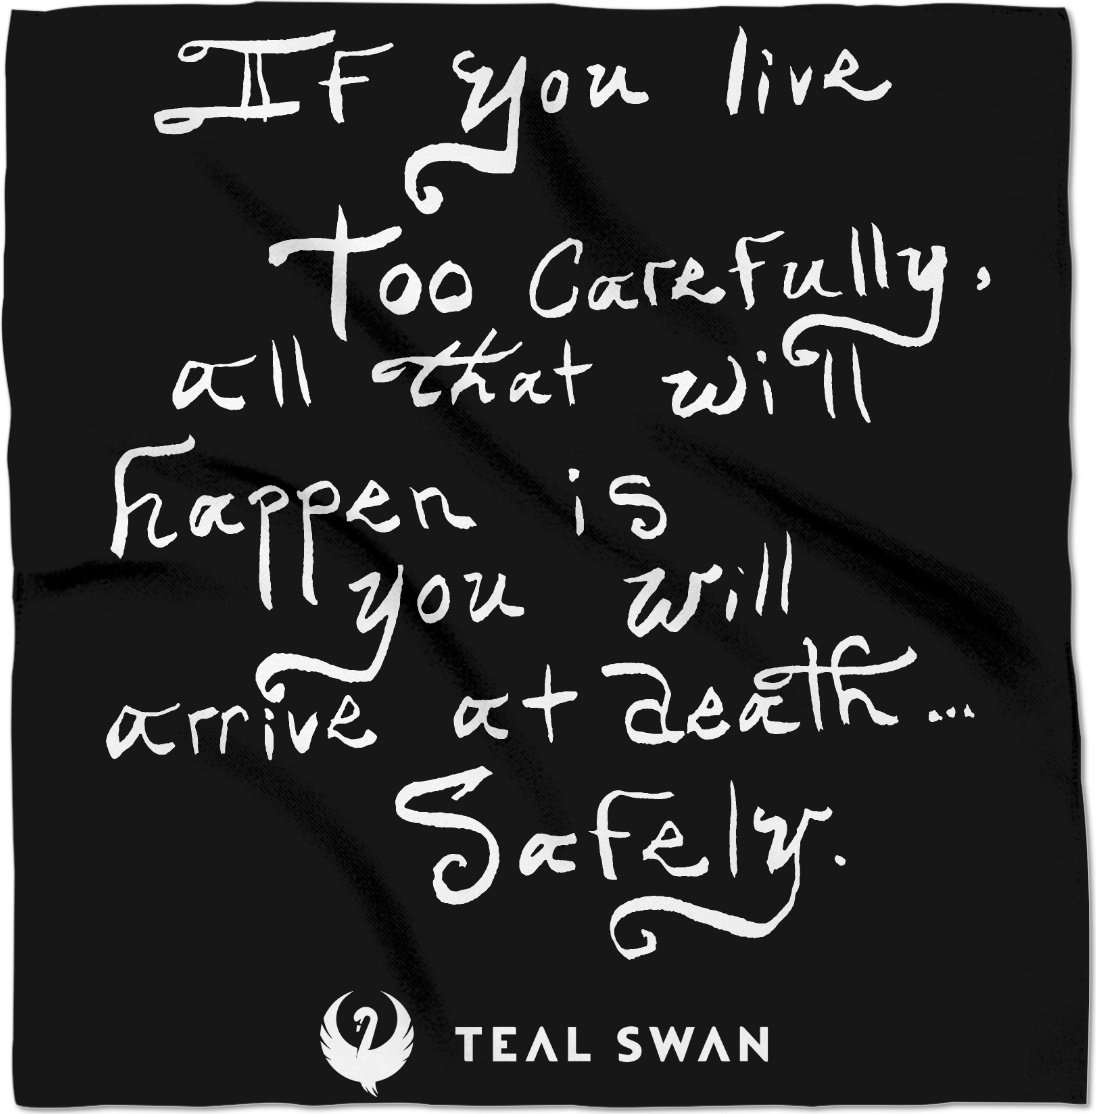 Live Too Carefully Quote - Bandana